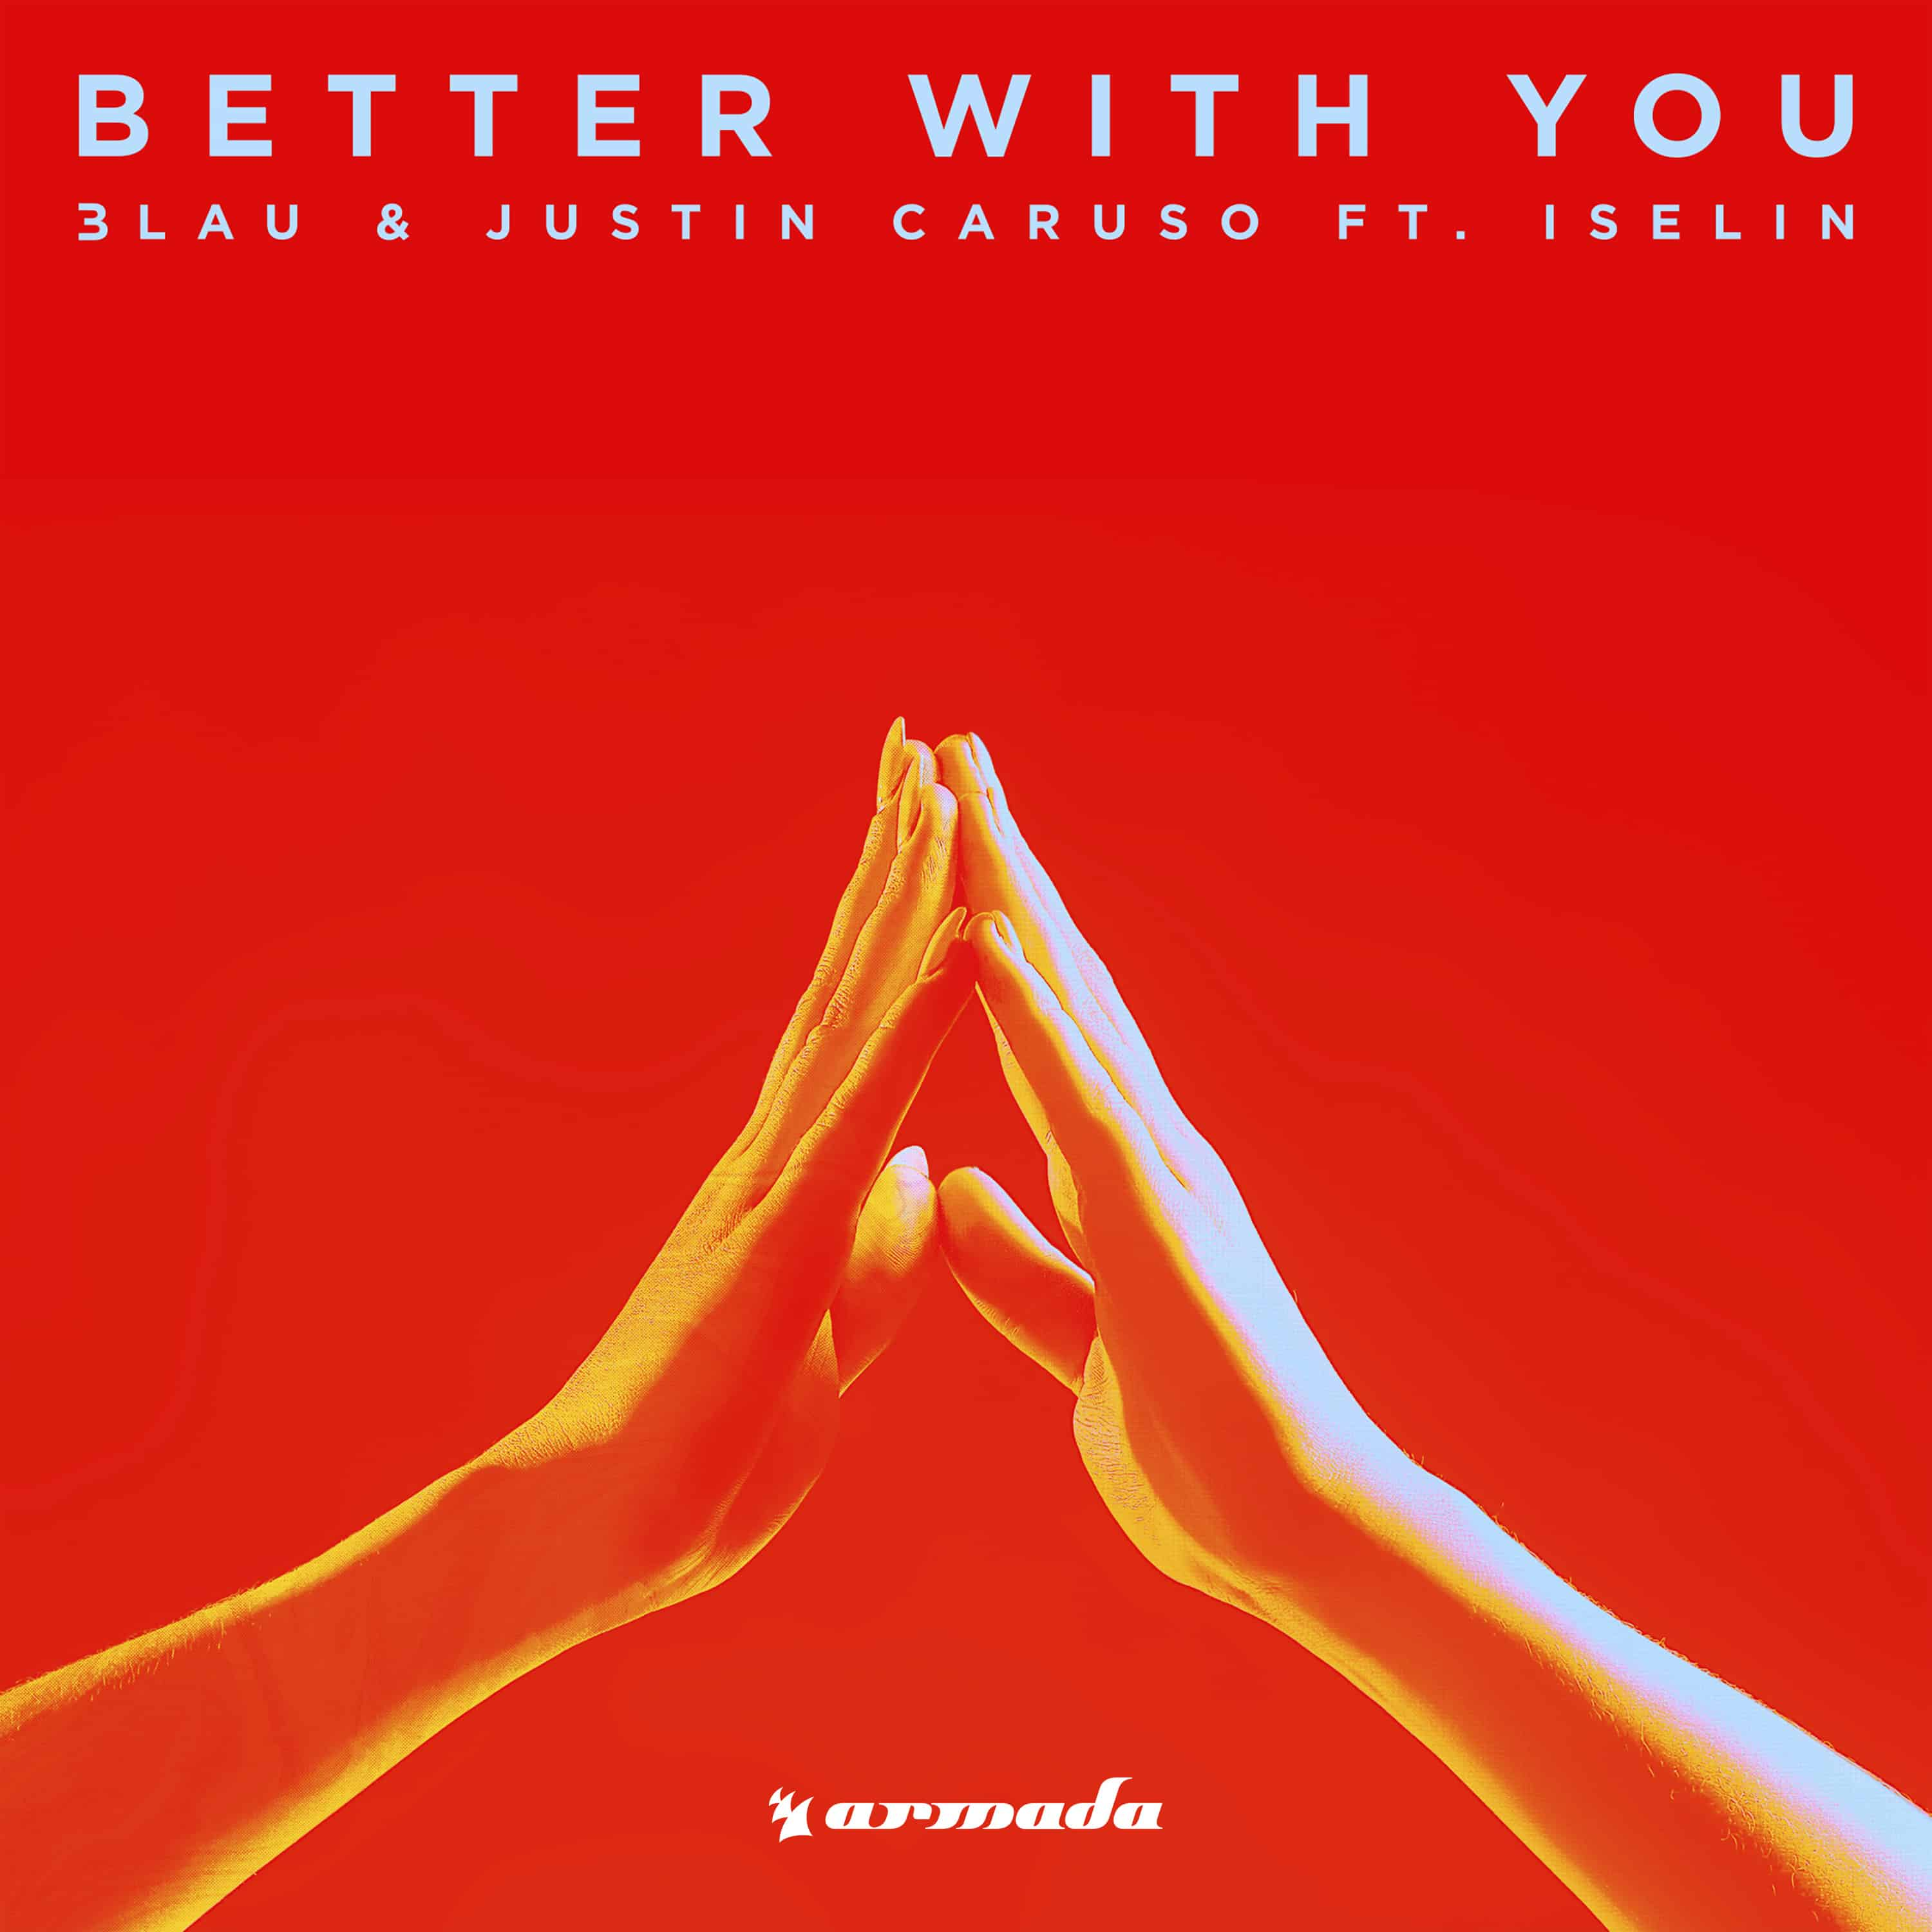 3LAU and Justin Caruso's 'Better With You' (feat. Iselin) Gets Viral Acapella Video Cover from Jared Halley